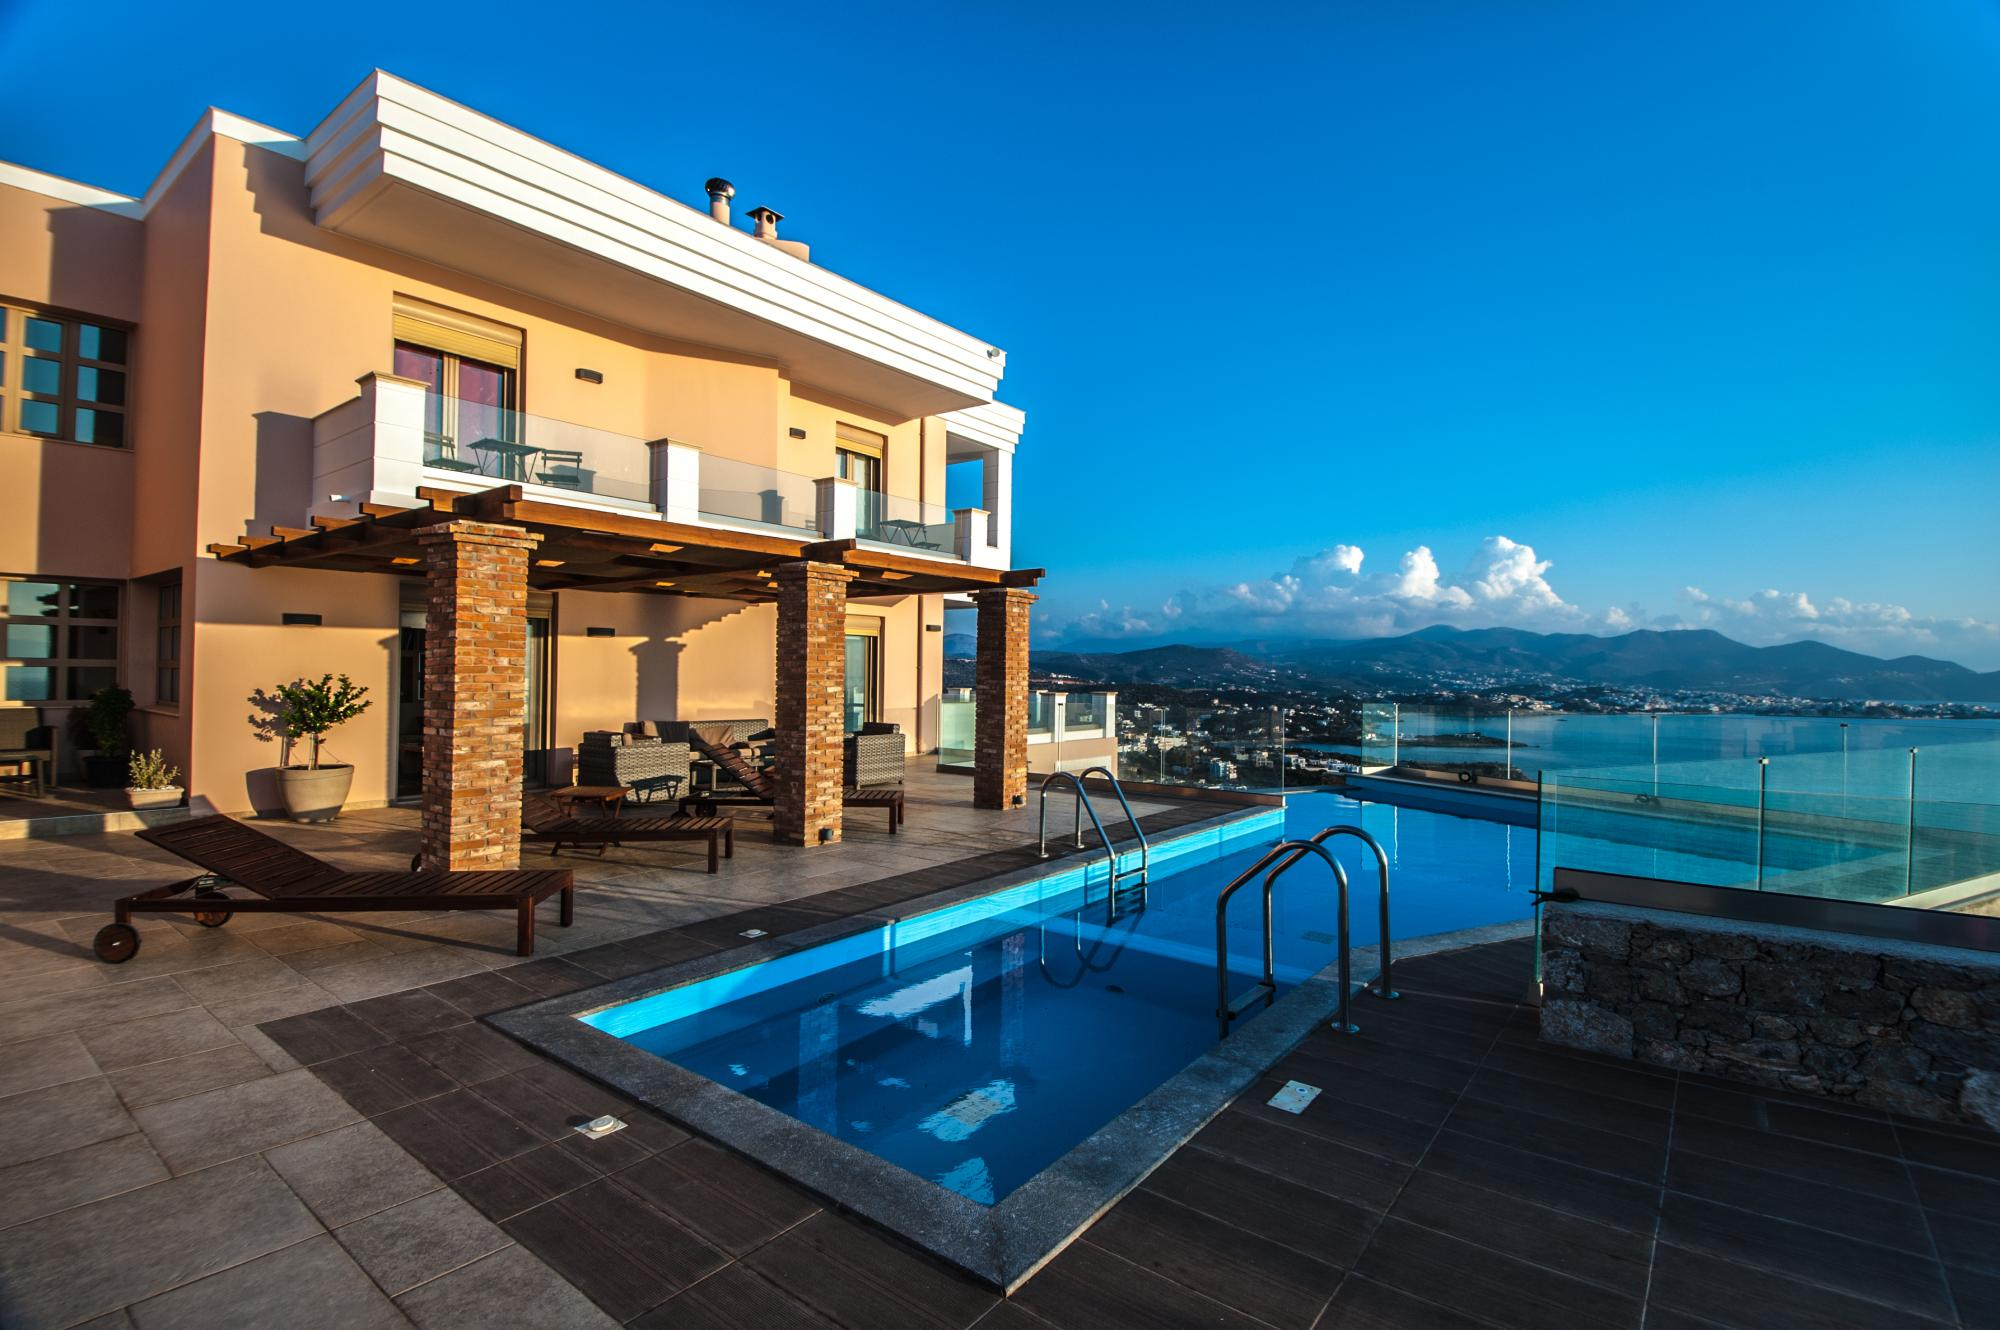 Exclusive 5 bedroom villa with breathtaking views.